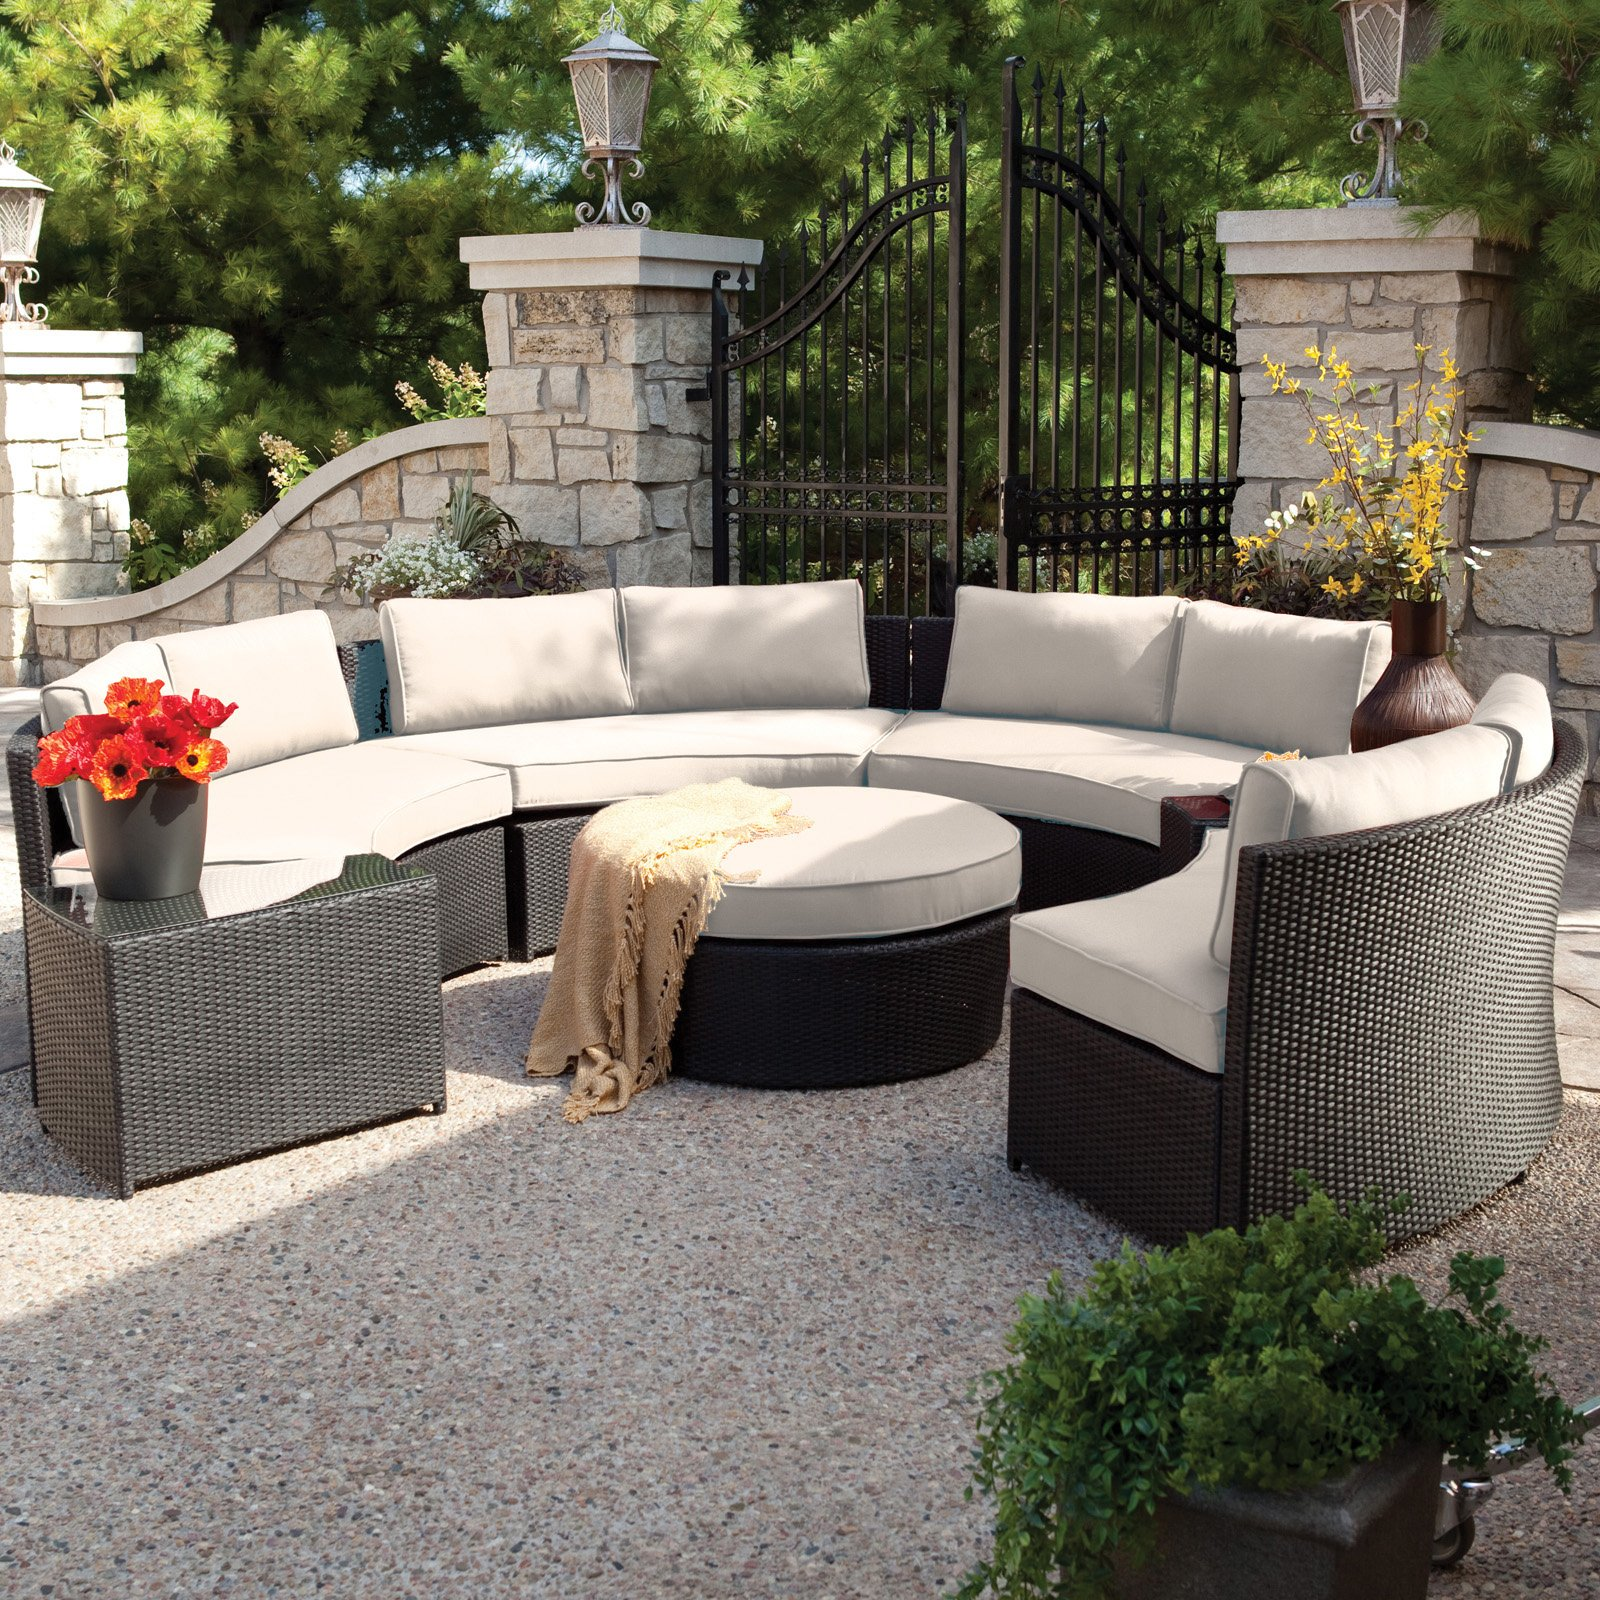 Overstock Outdoor Furniture | Overstock Patio | Overstock Accent Tables